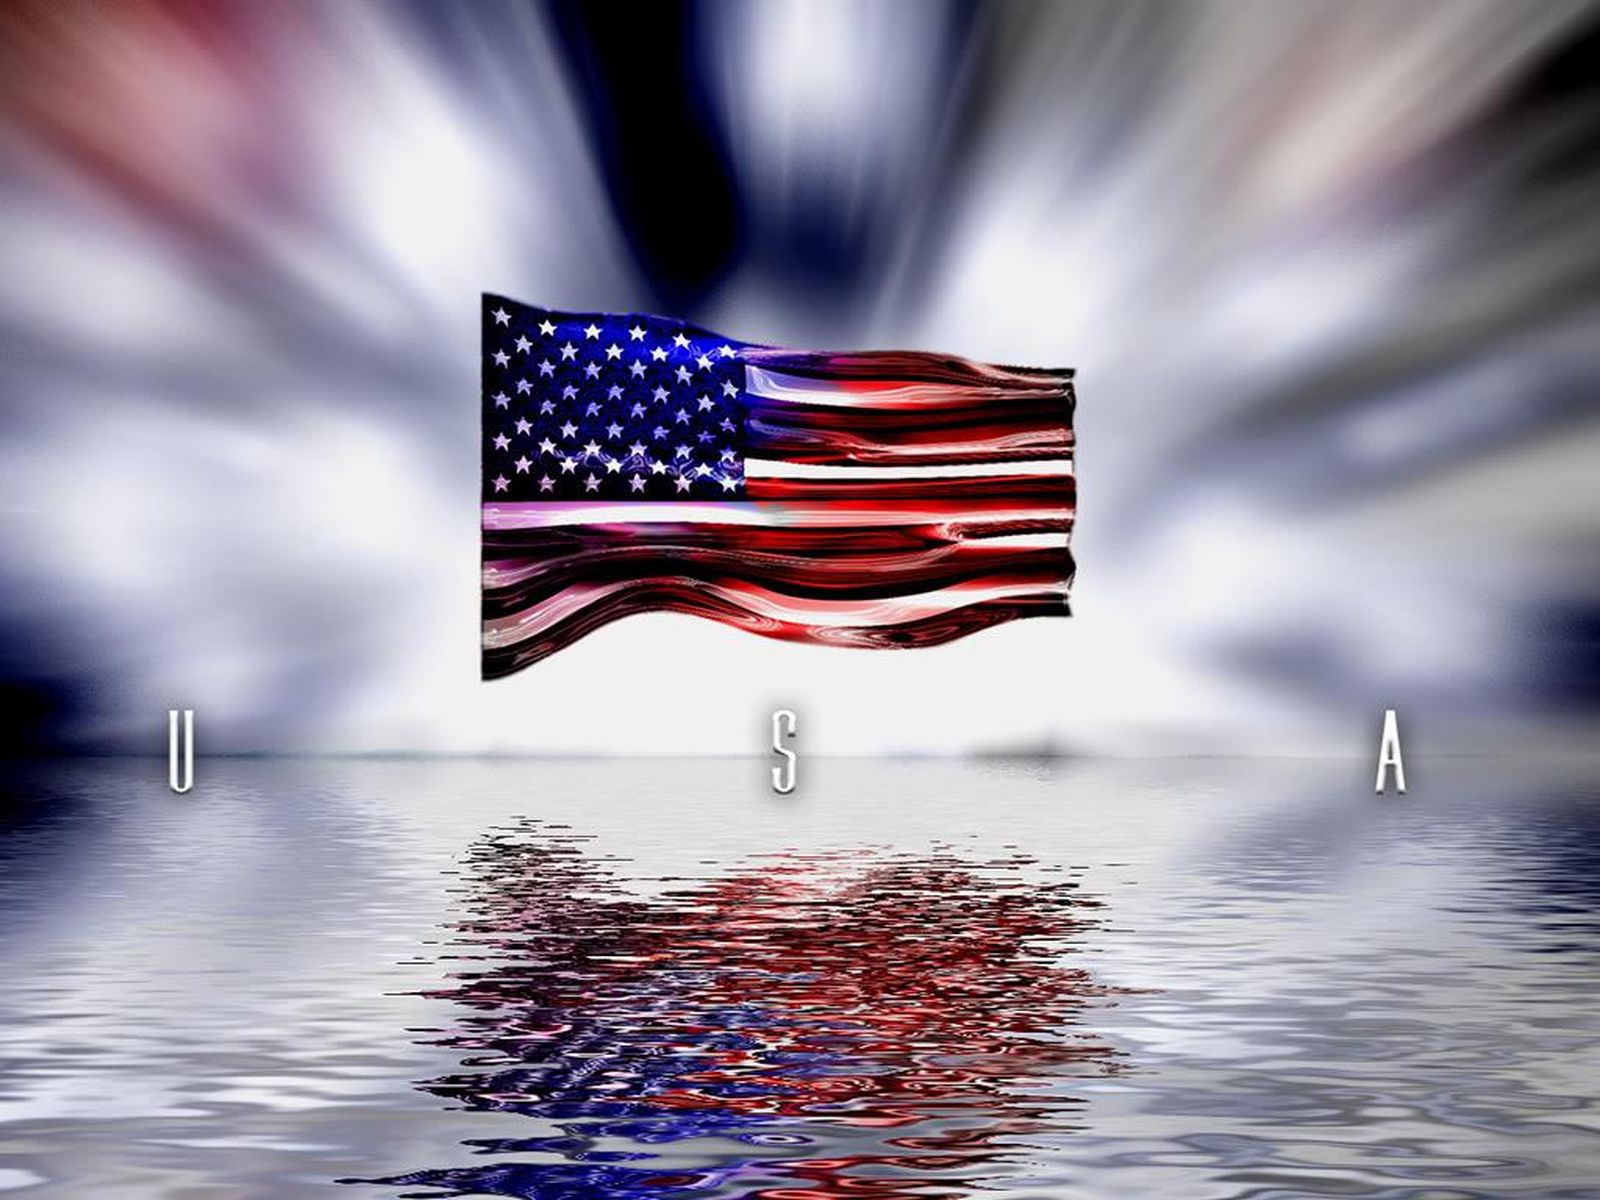 USA United States of America Flag Wallpaper Background Image 1600x1200